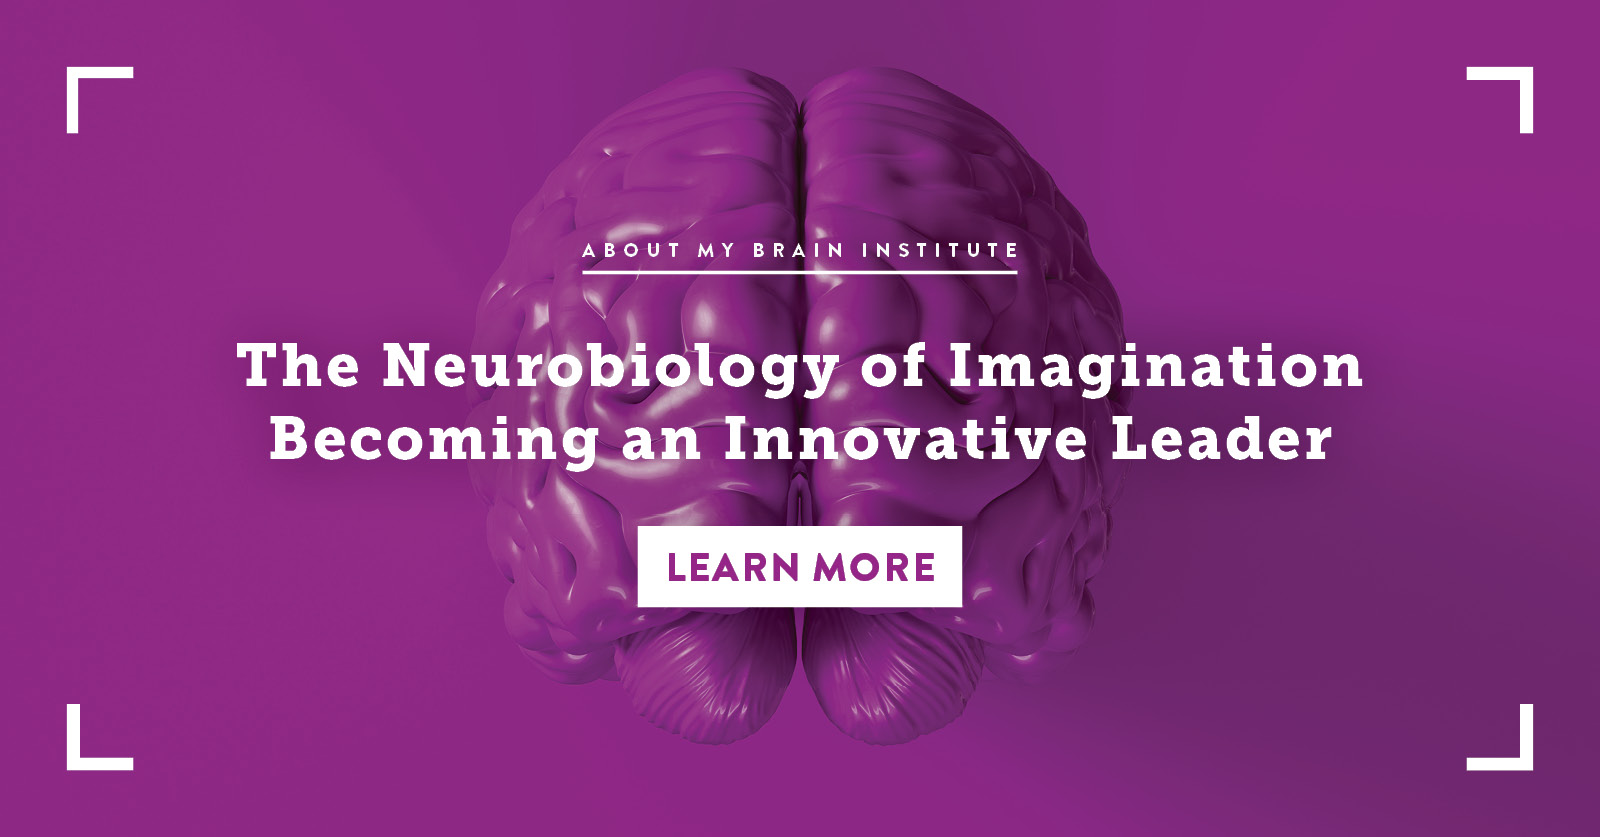 The Neurobiology of Imagination - Becoming an Innovative Leader